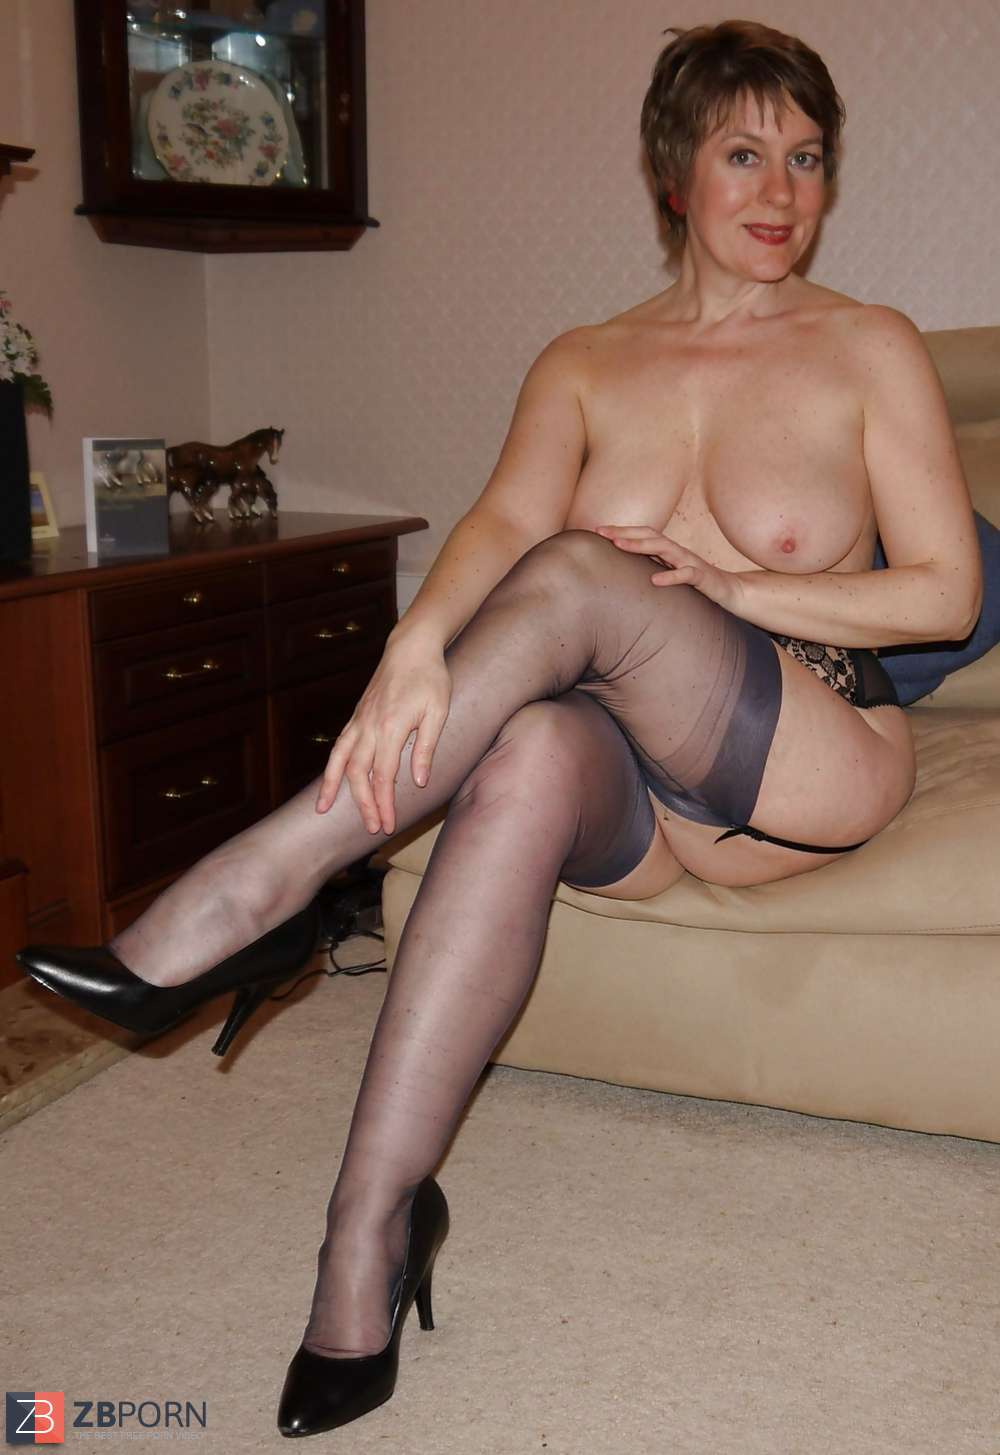 Apologise, but mature german women in pantyhose